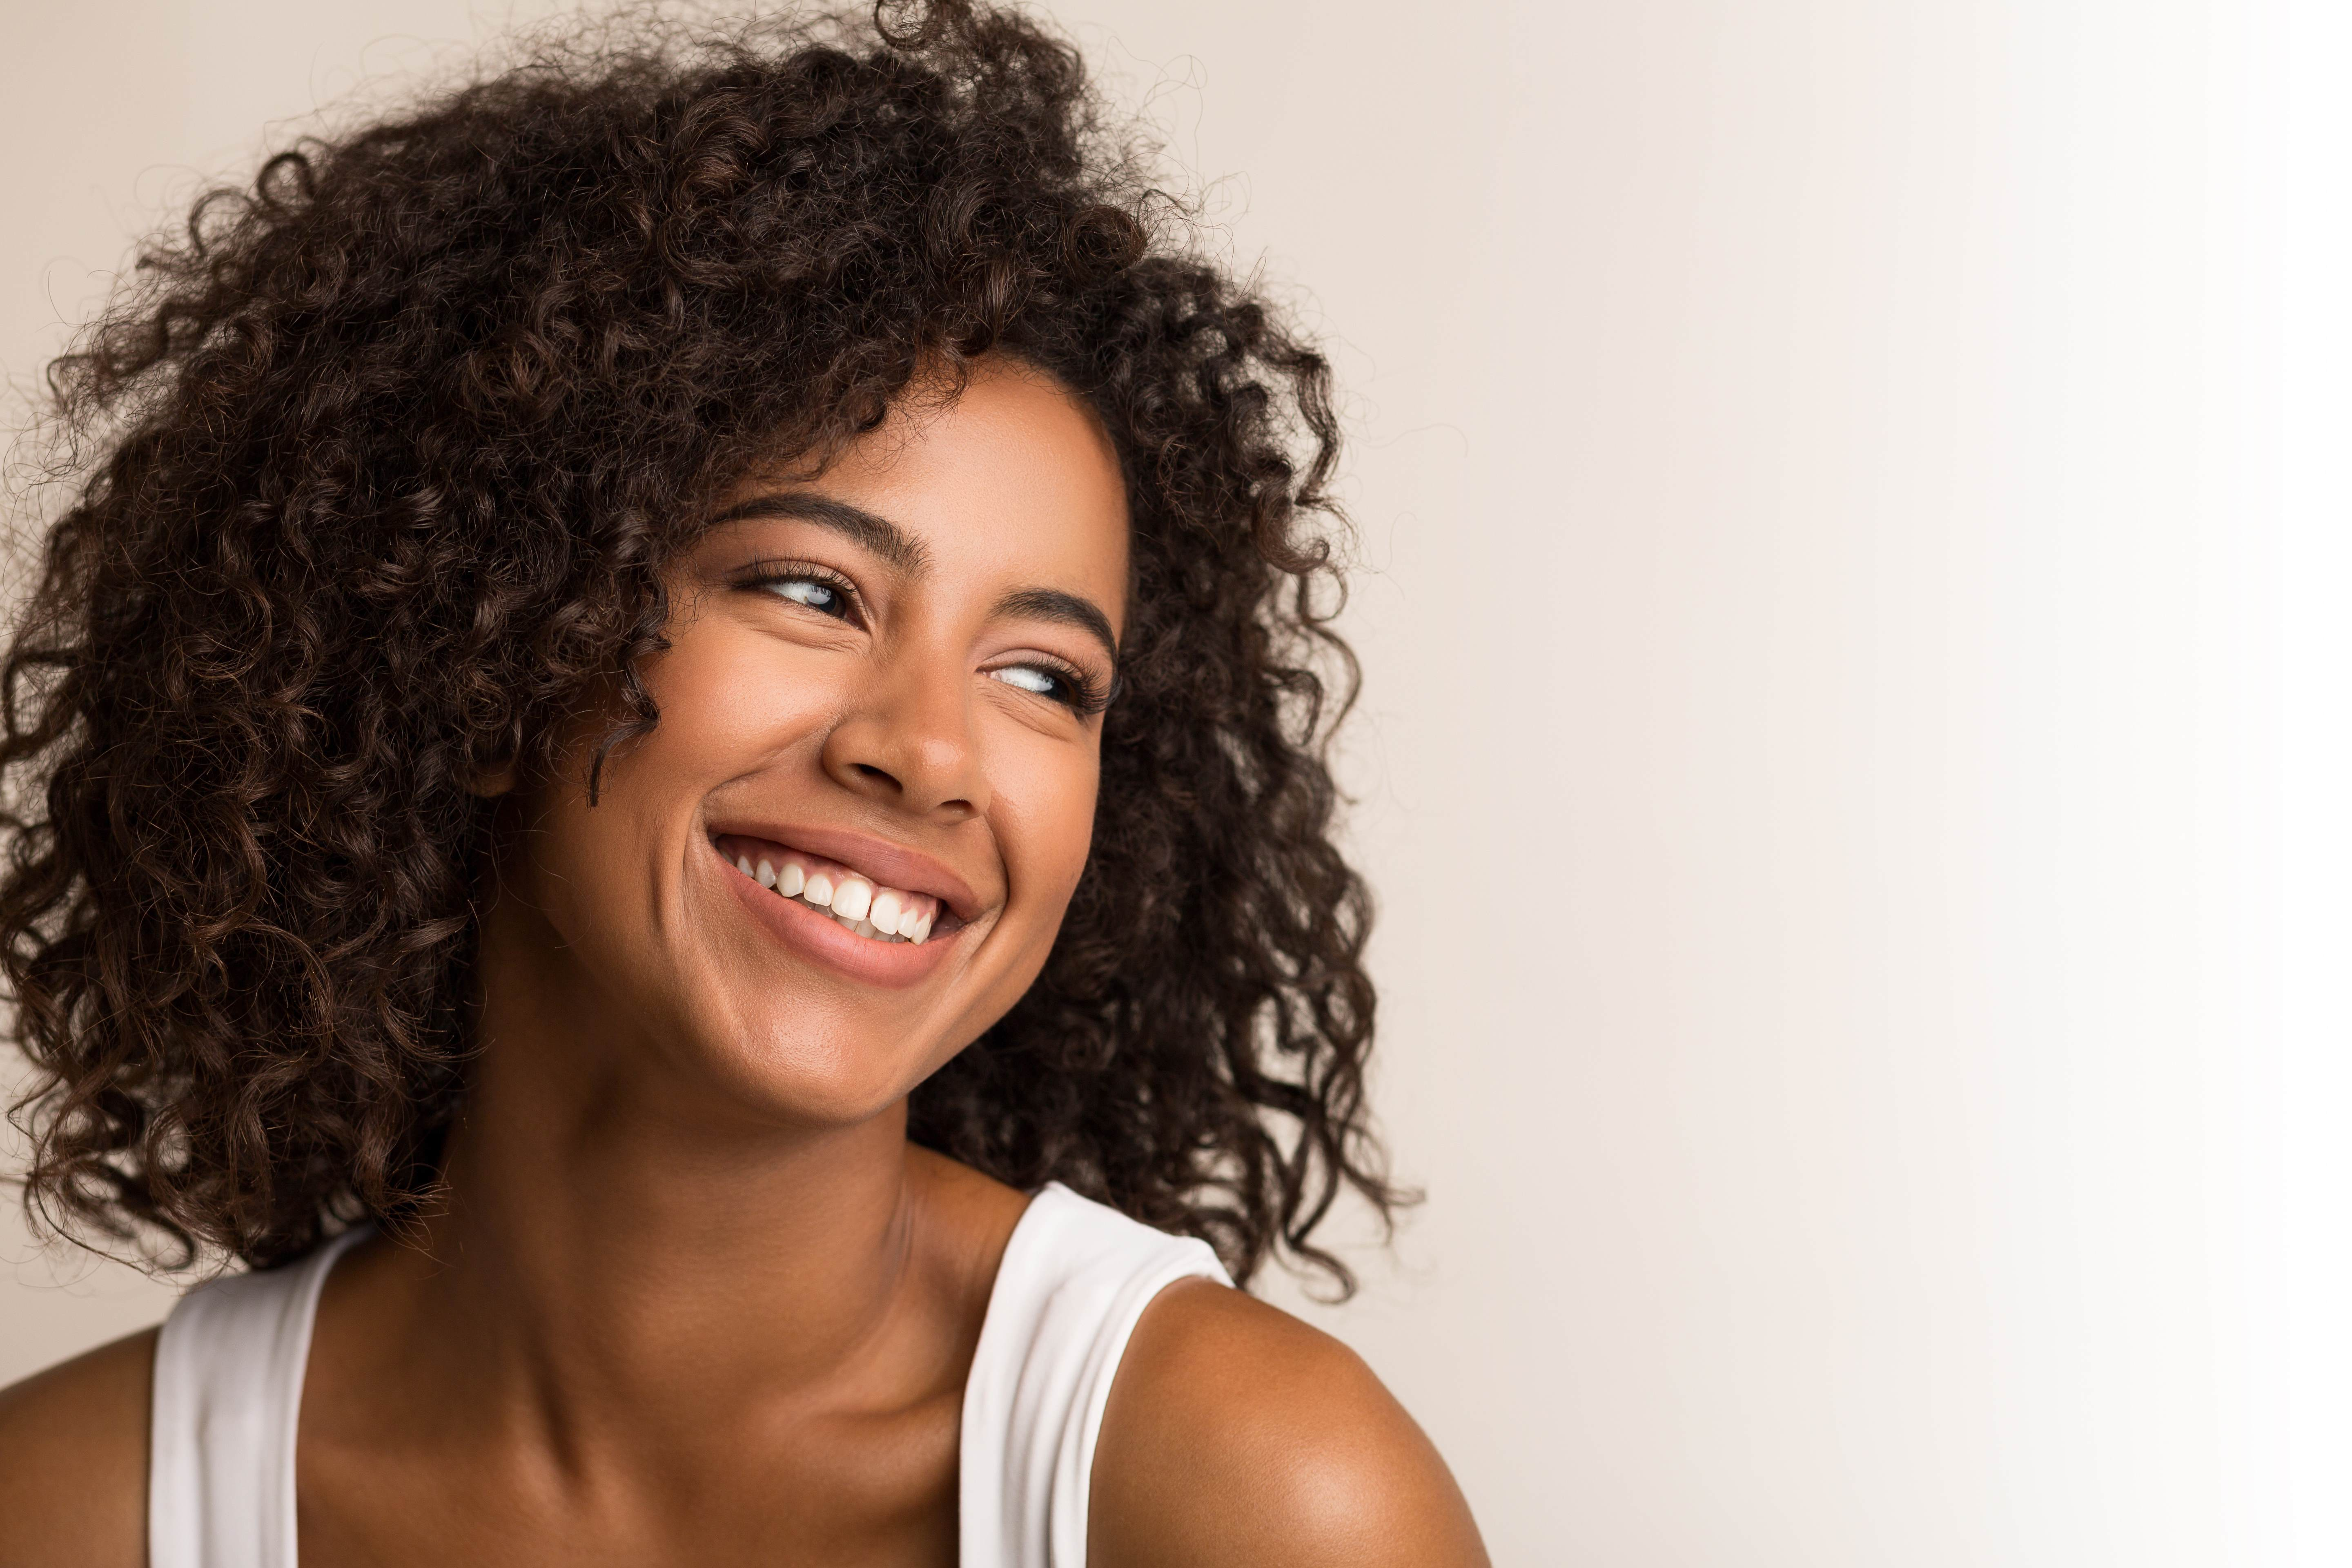 Woman smiling with curly hair and glowing skin